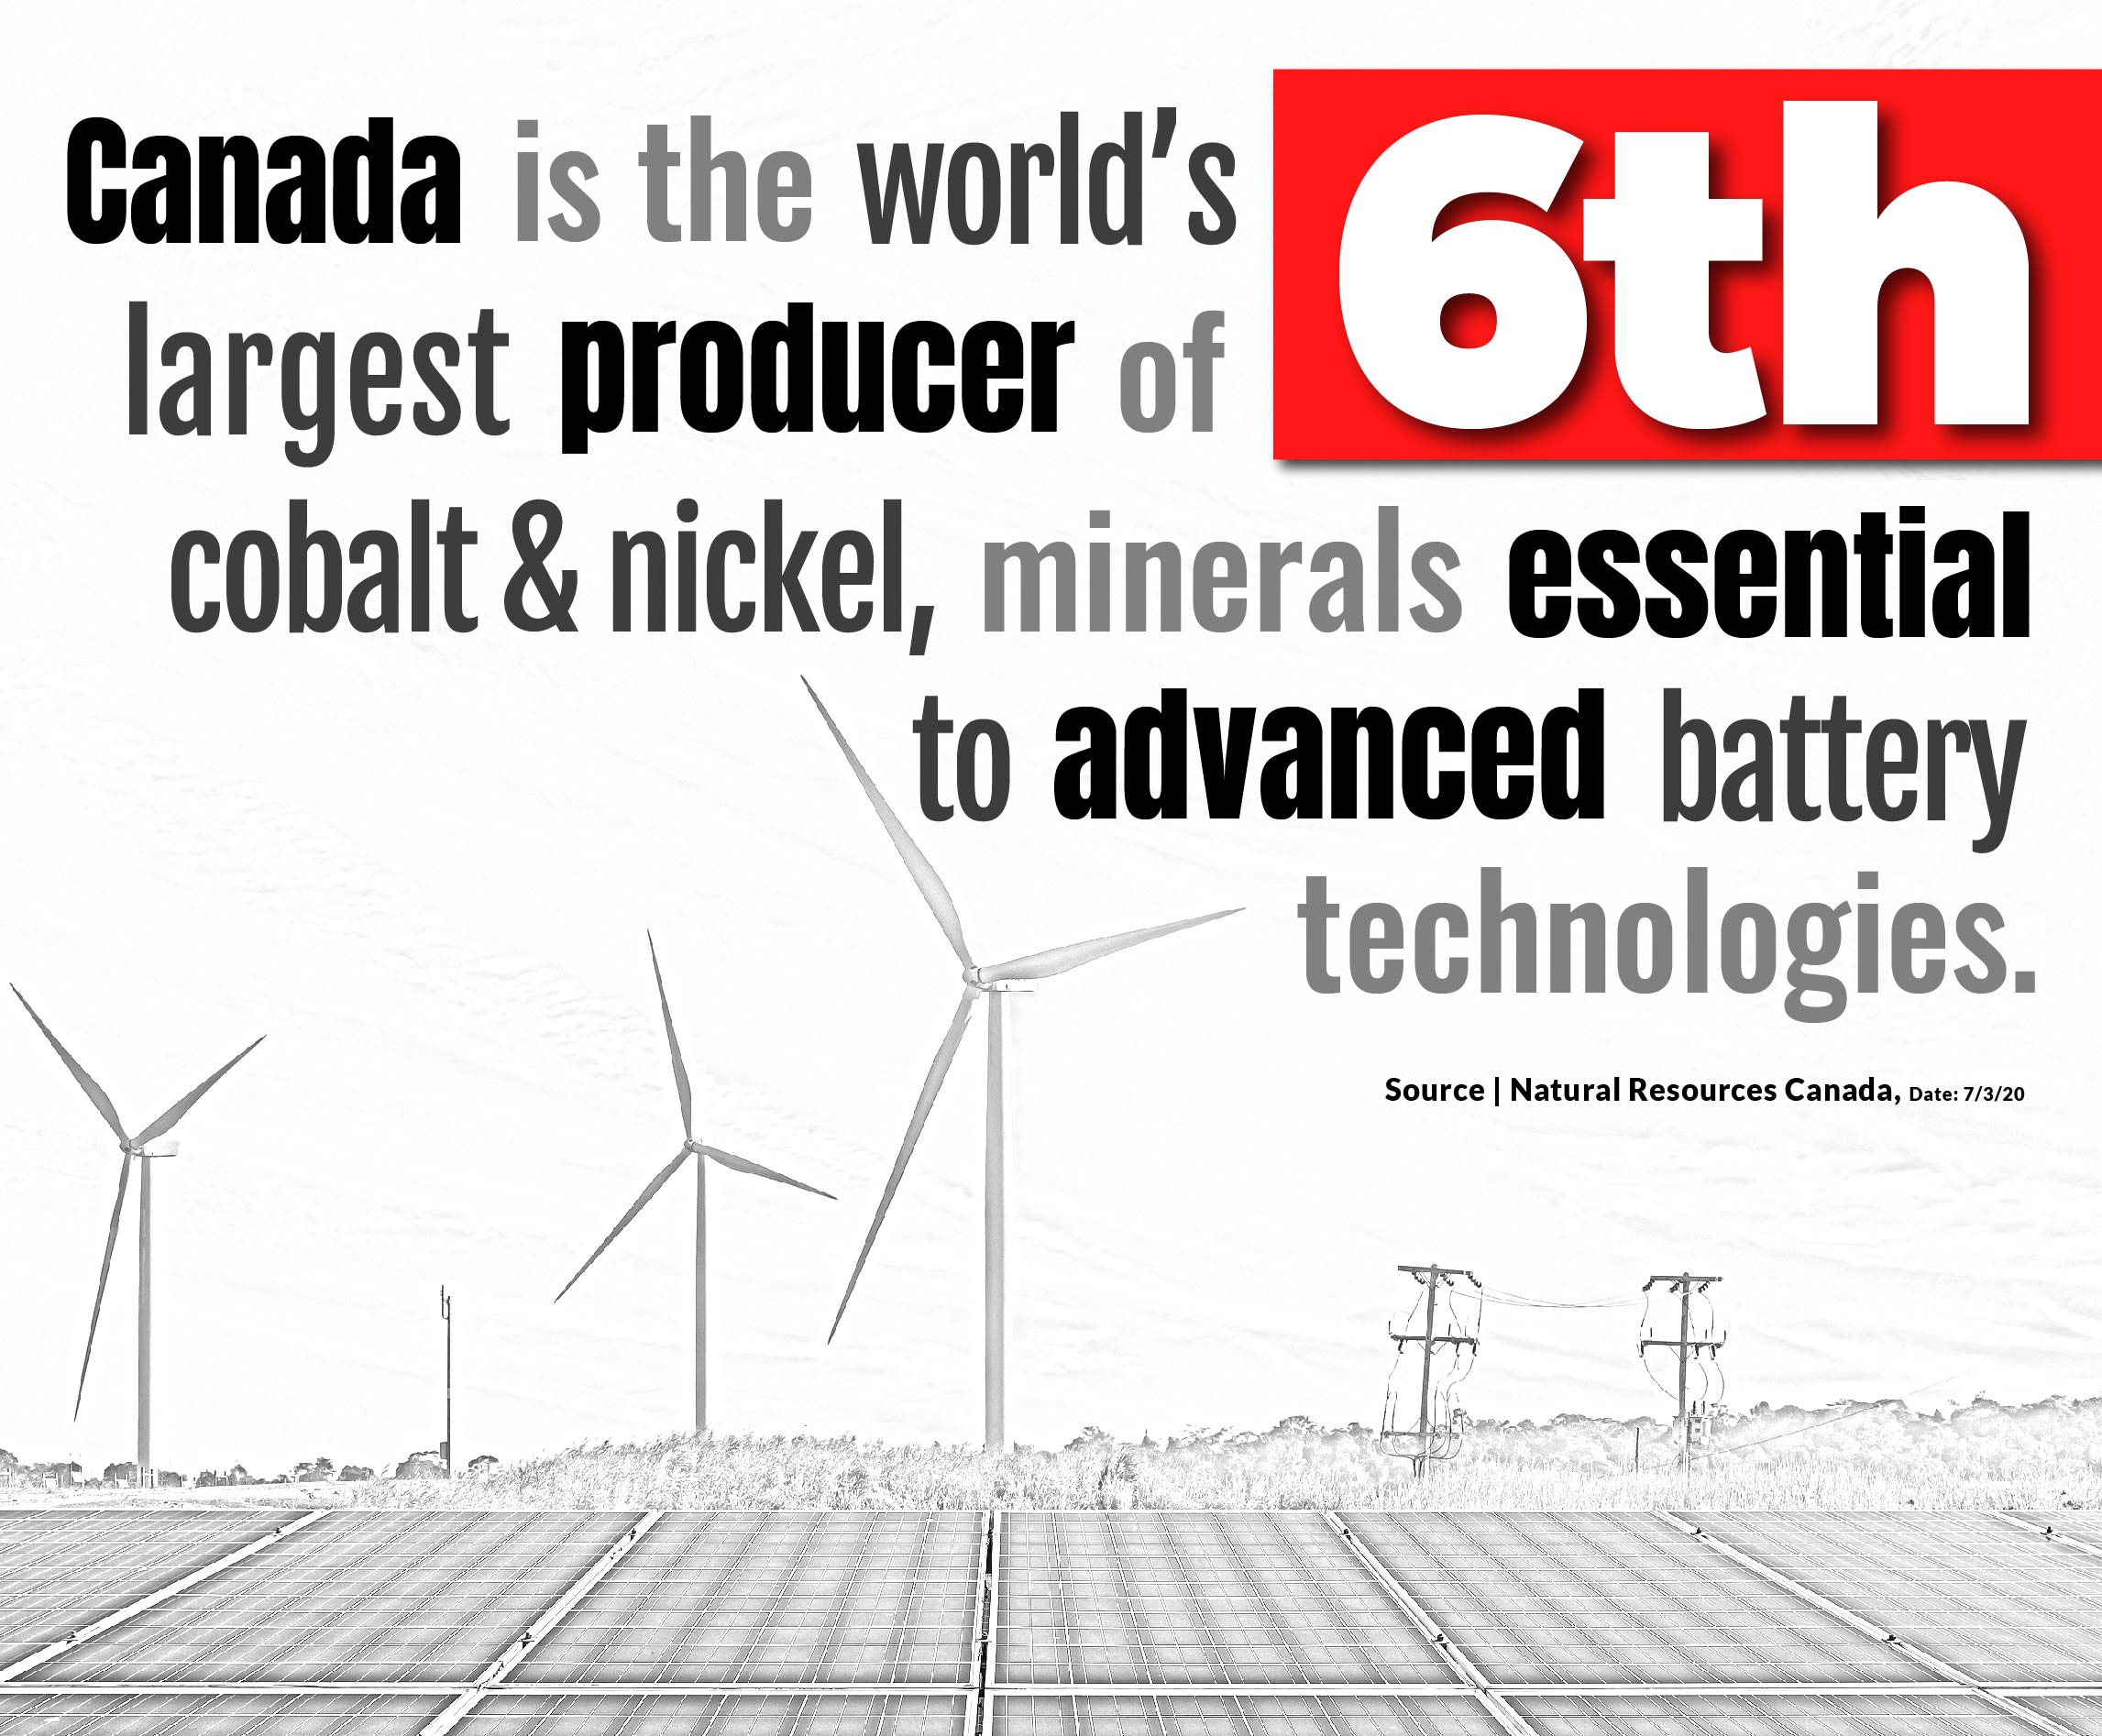 Canada is a top producer of mining metals used in advanced batteries